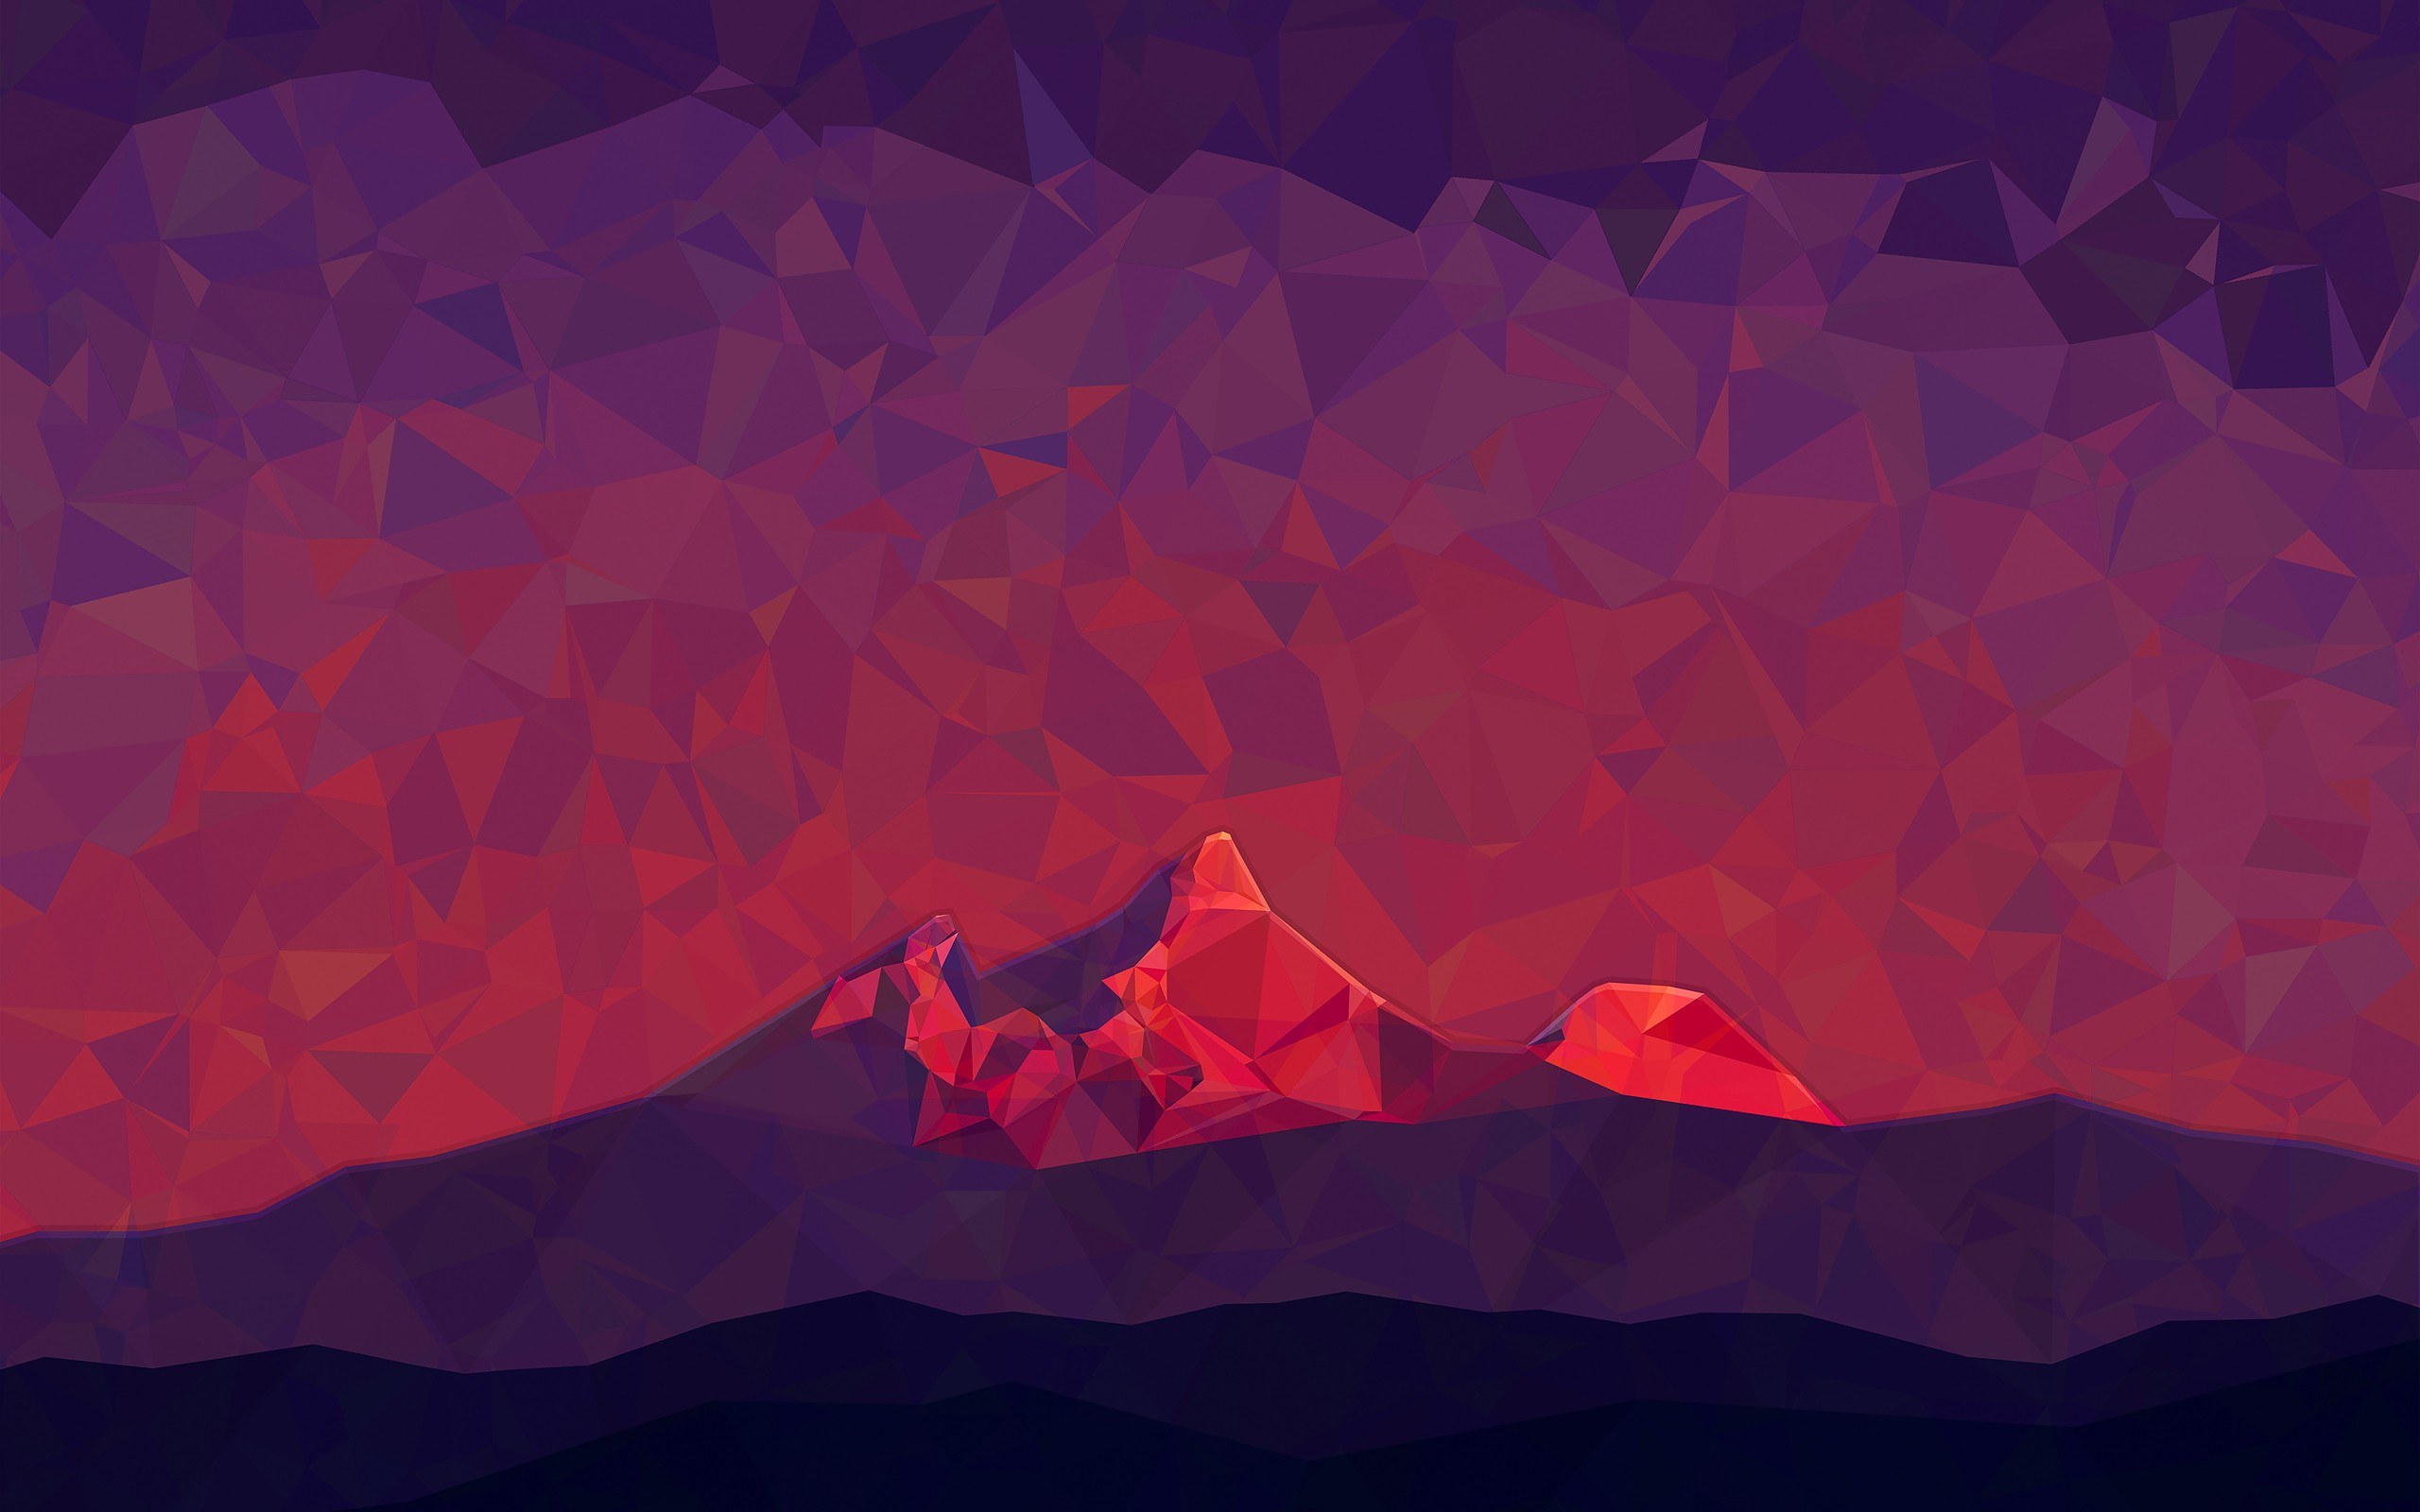 Polygon background download free beautiful high resolution 2560x1600 download free polygon background 2560x1600 cell phone voltagebd Choice Image